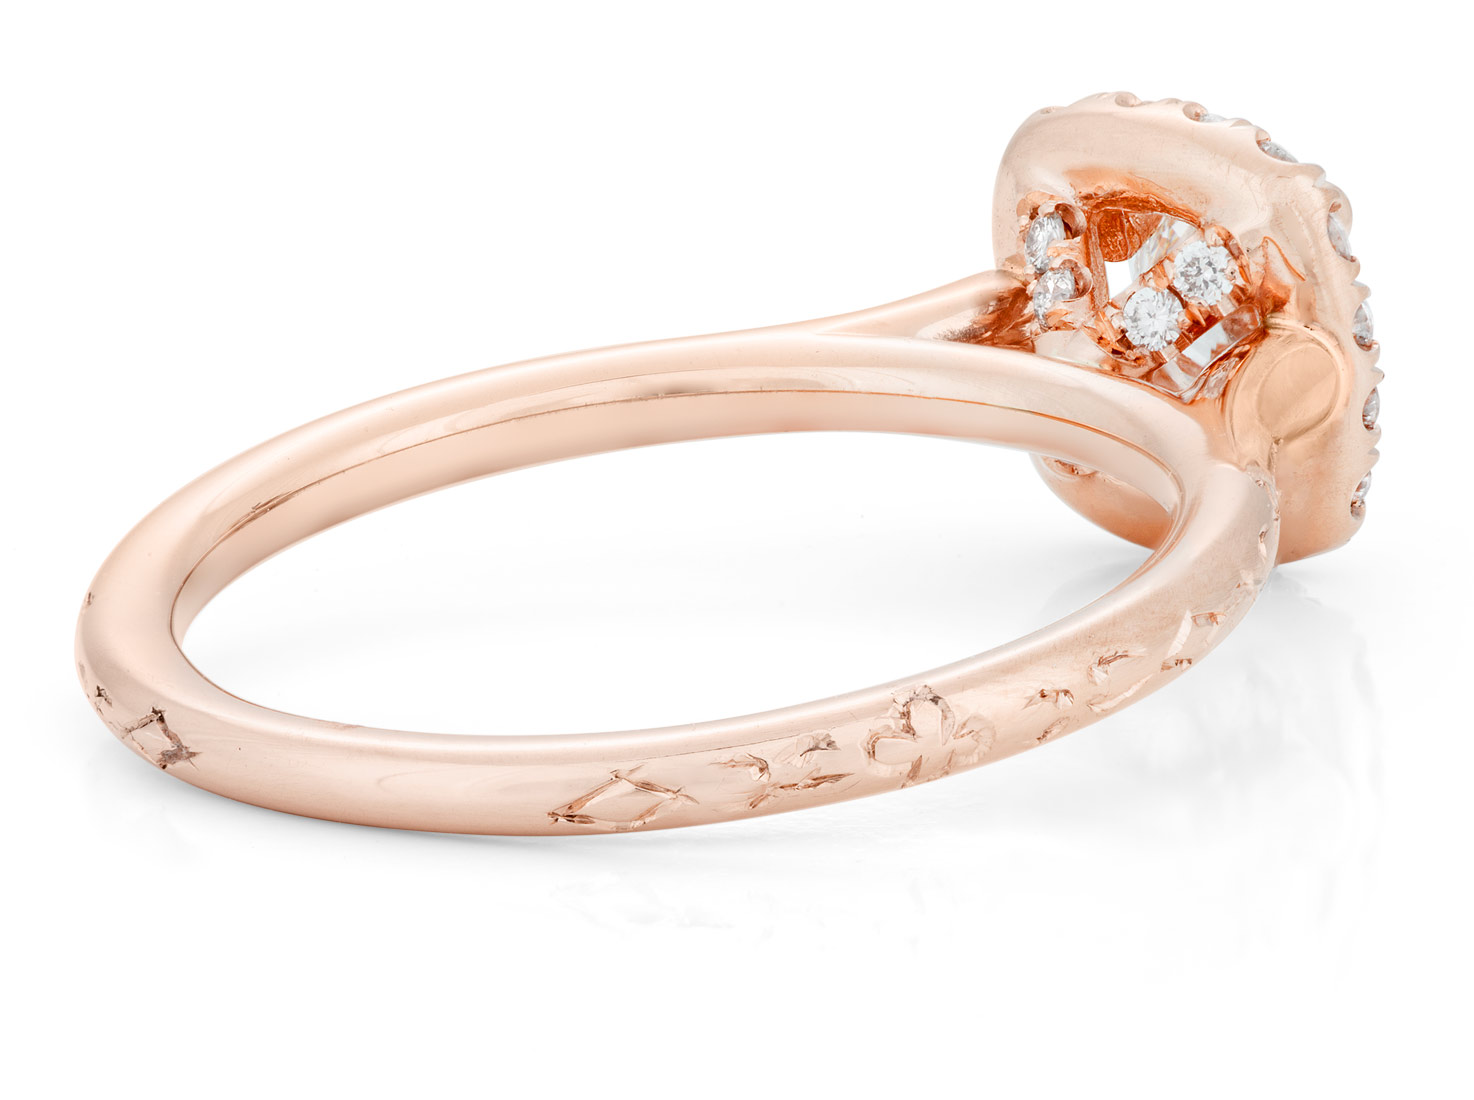 bella italia bridal ring